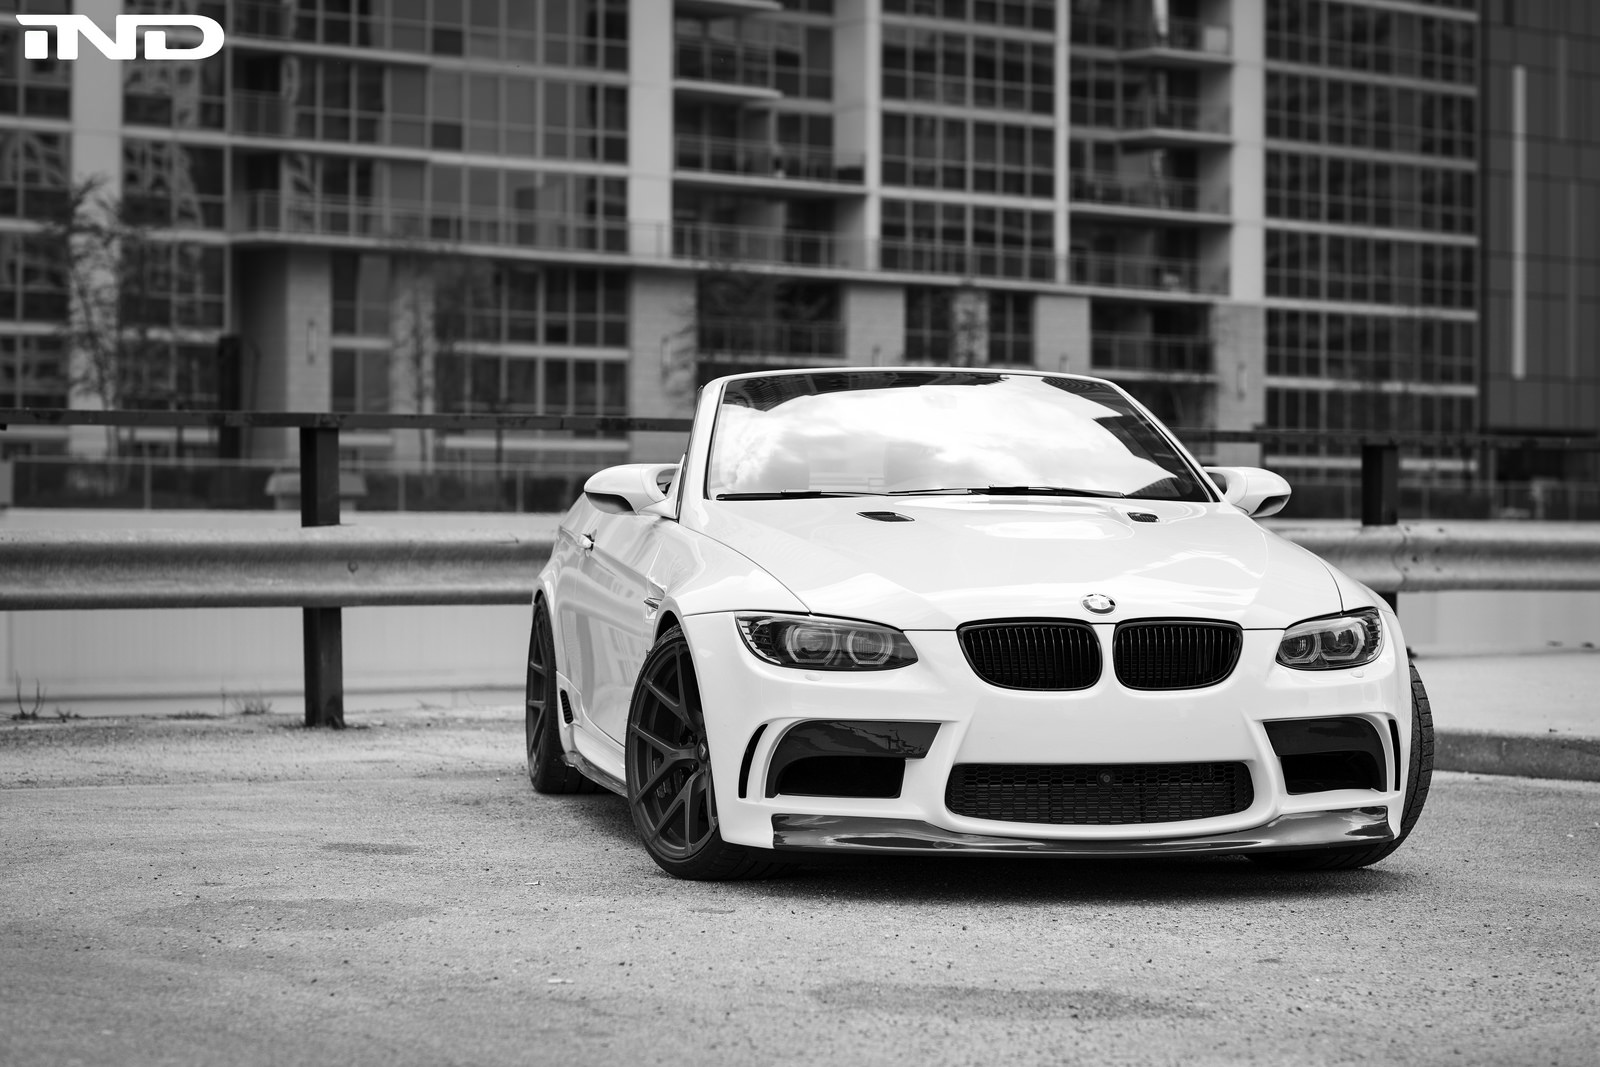 The Smiling Bmw M3 Is Pure Awesomeness